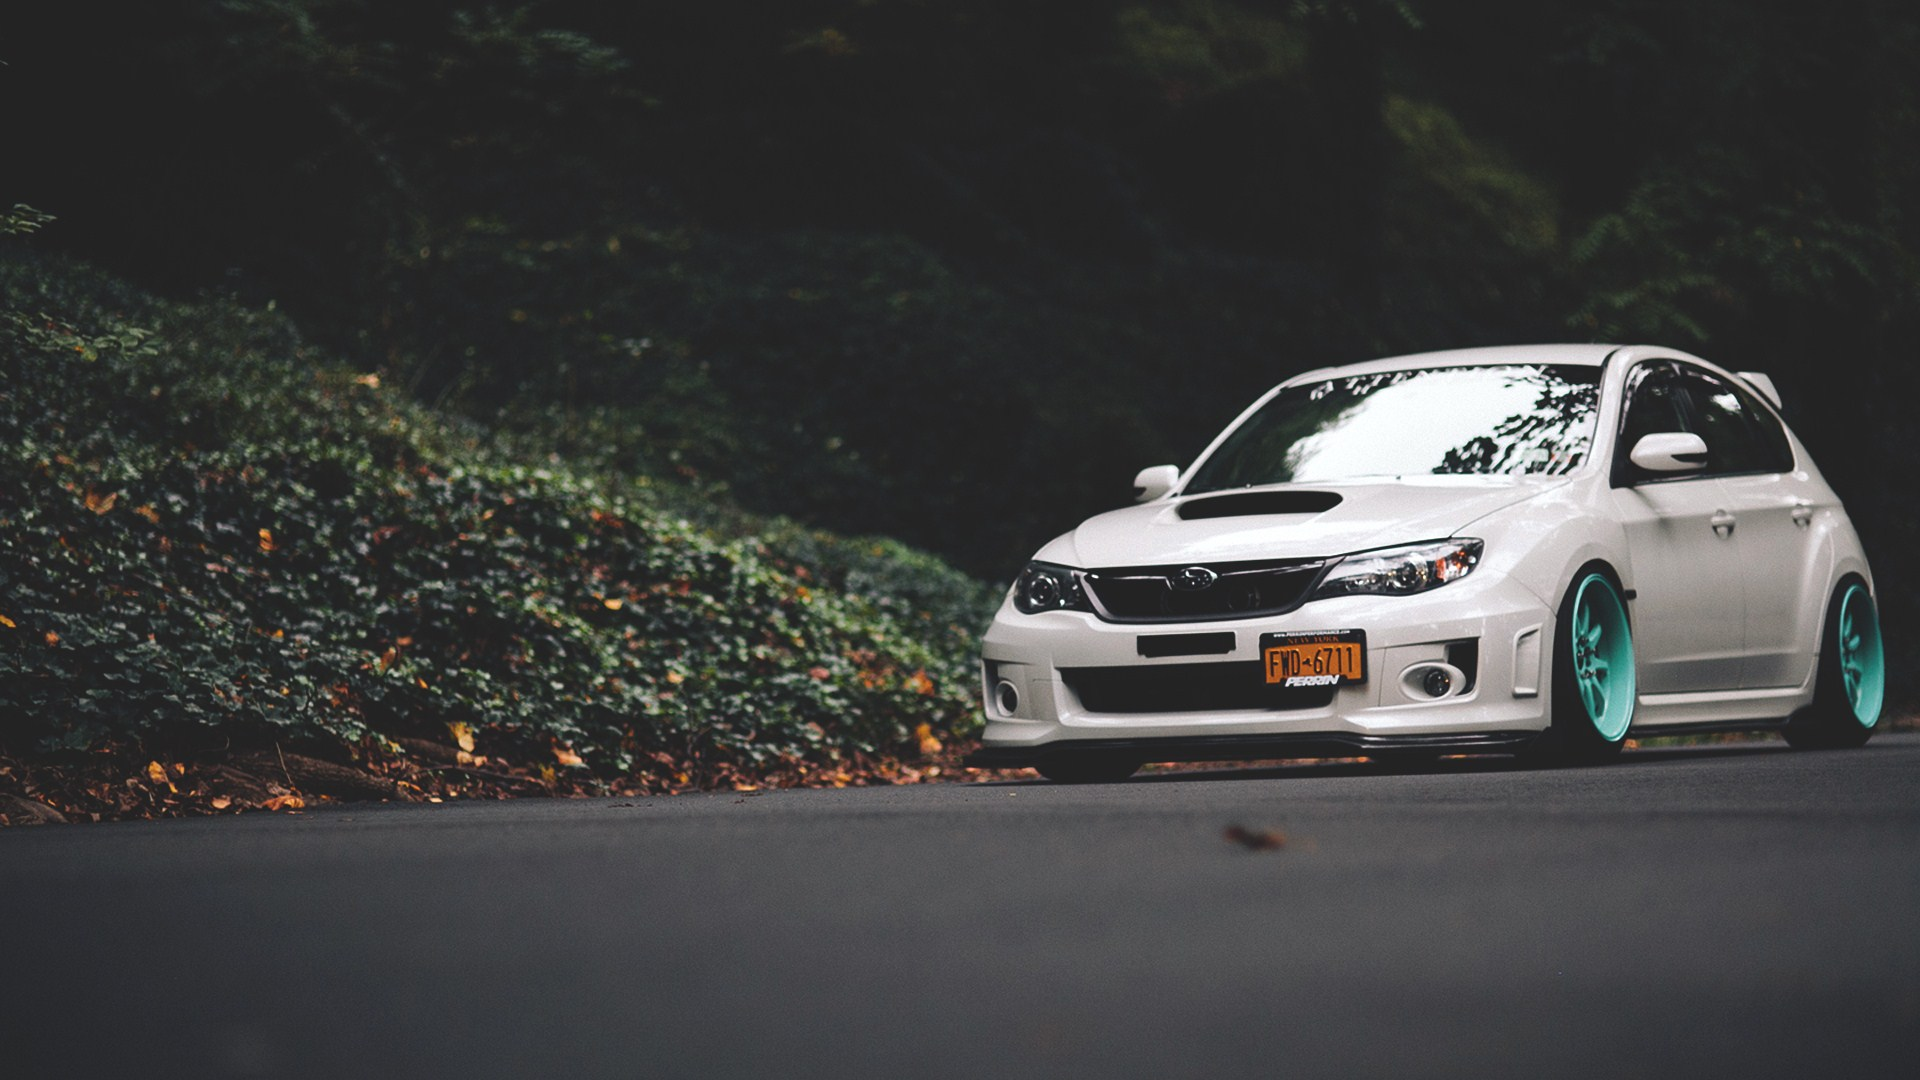 Subaru Impreza Road Forest Fall Leaves HD Wallpaper